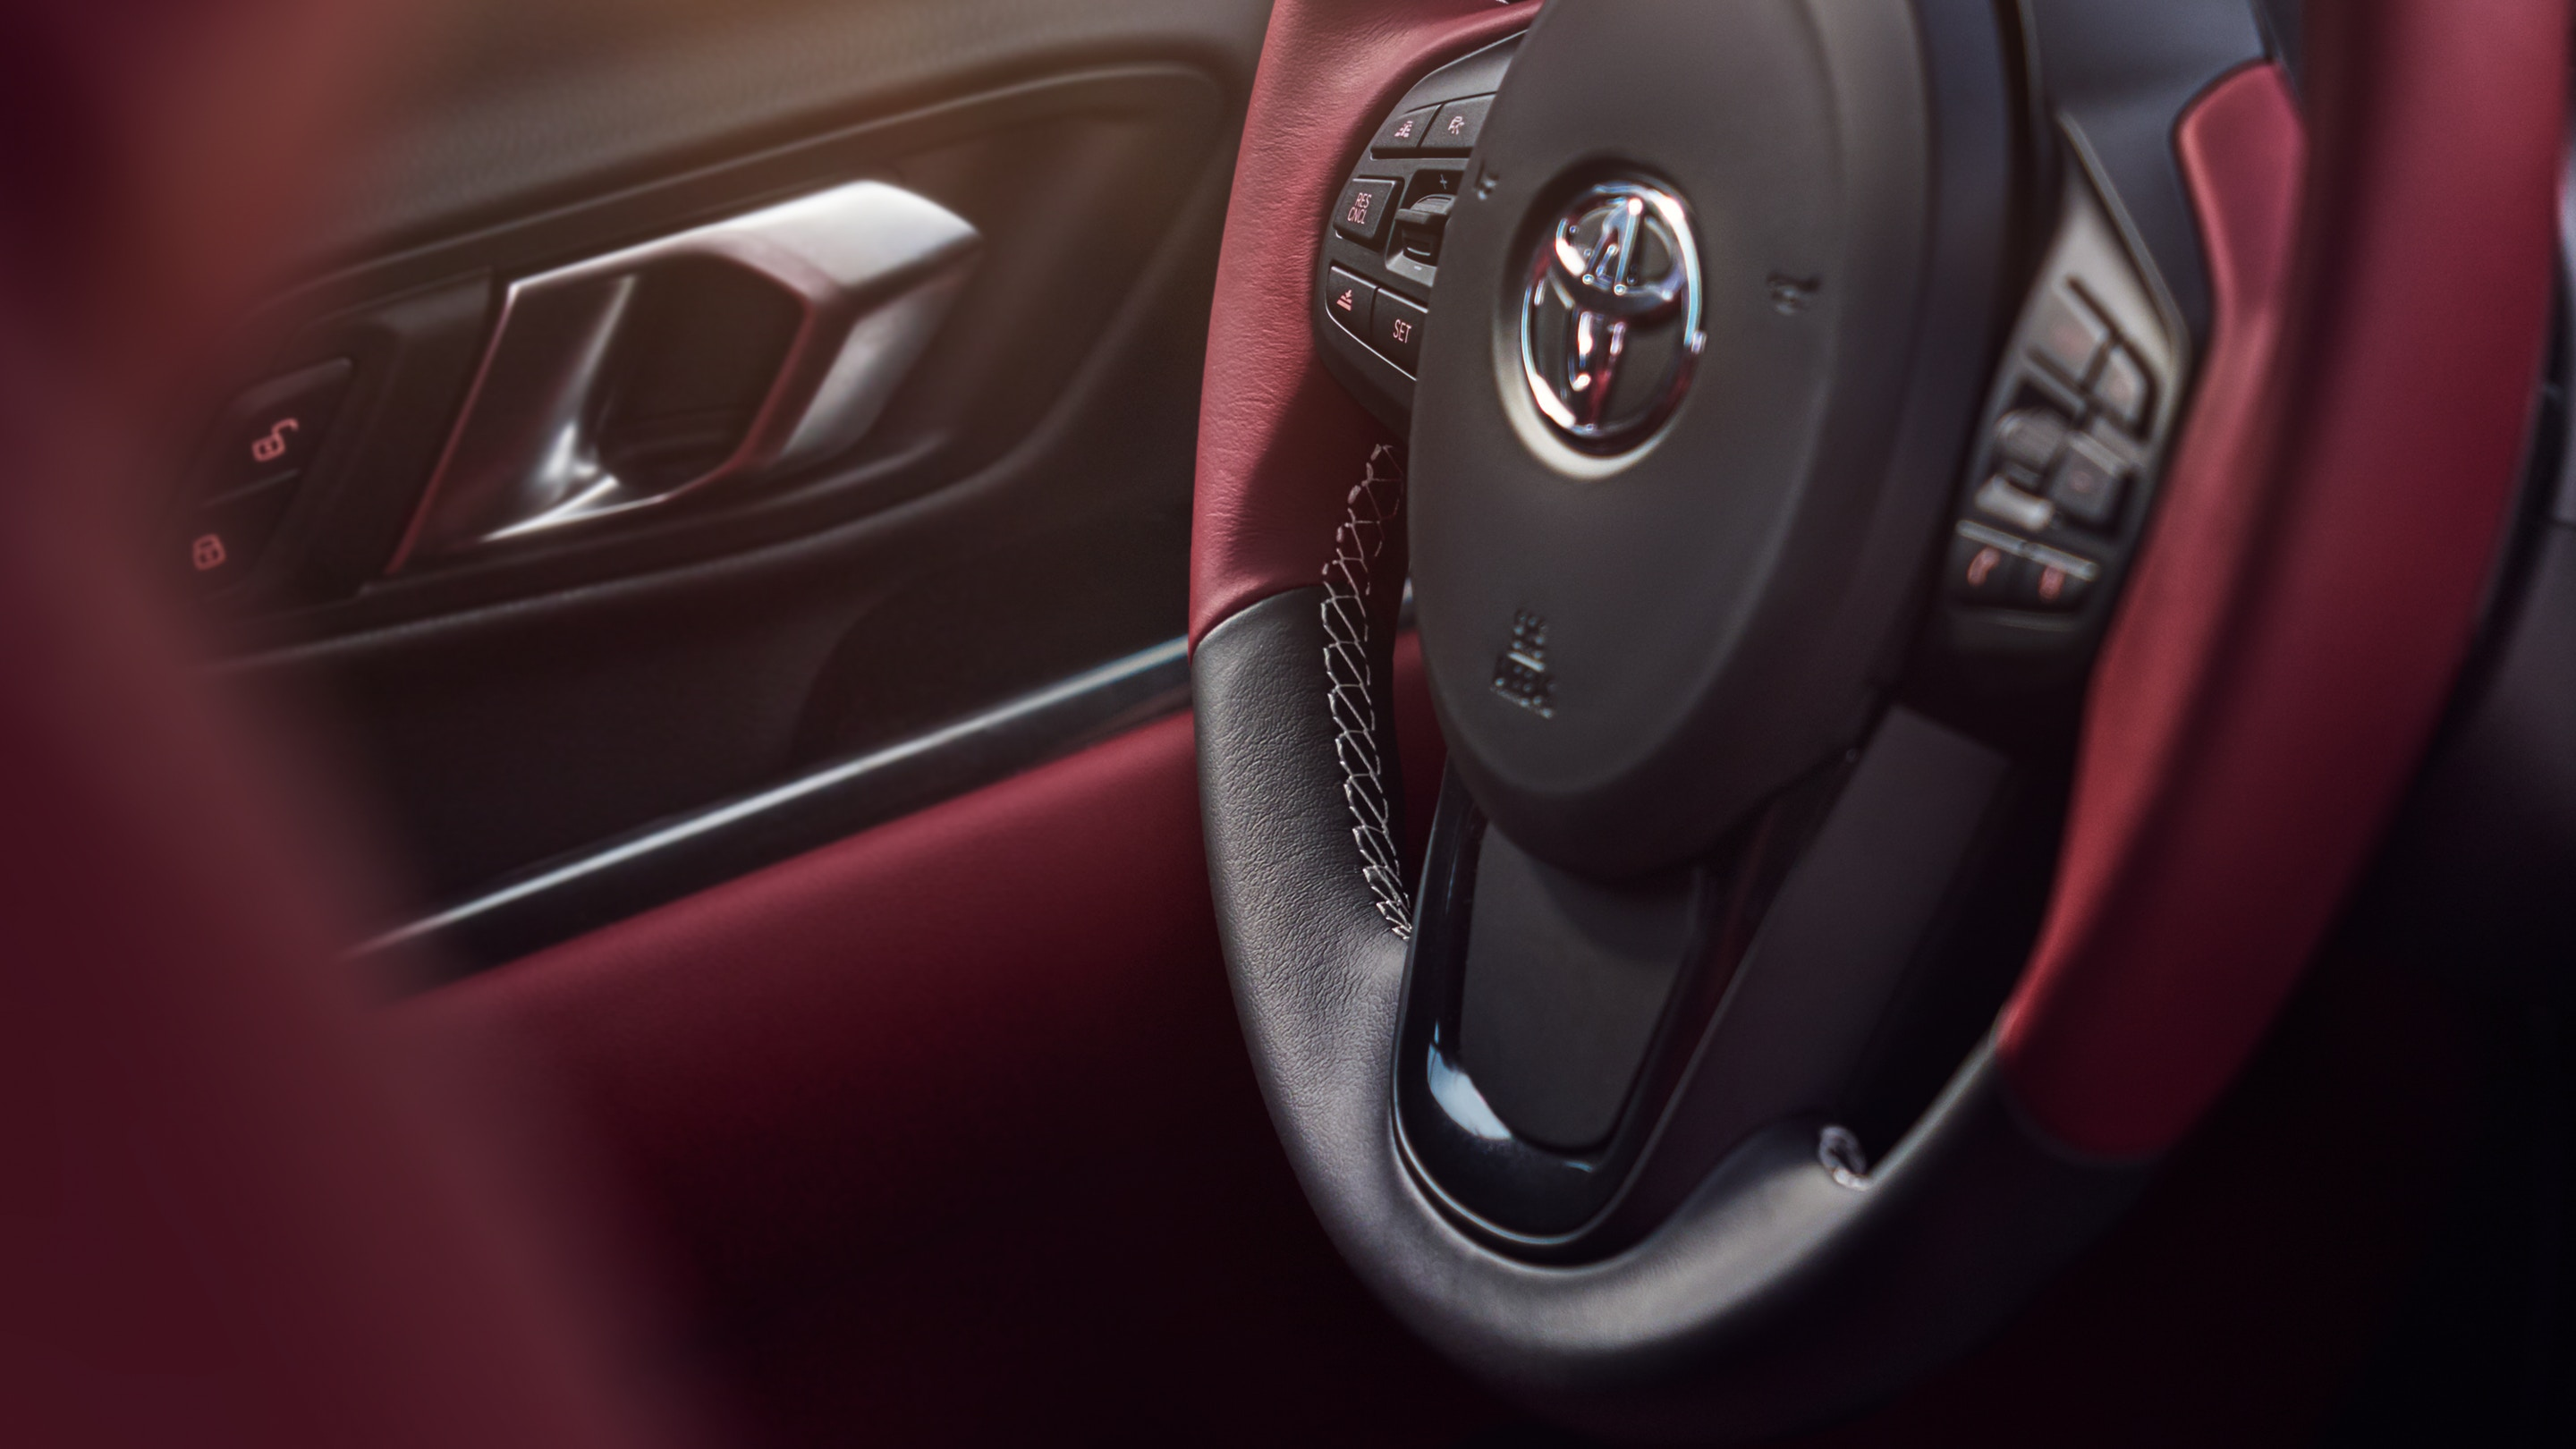 2020 Supra Leather-Wrapped Steering Wheel